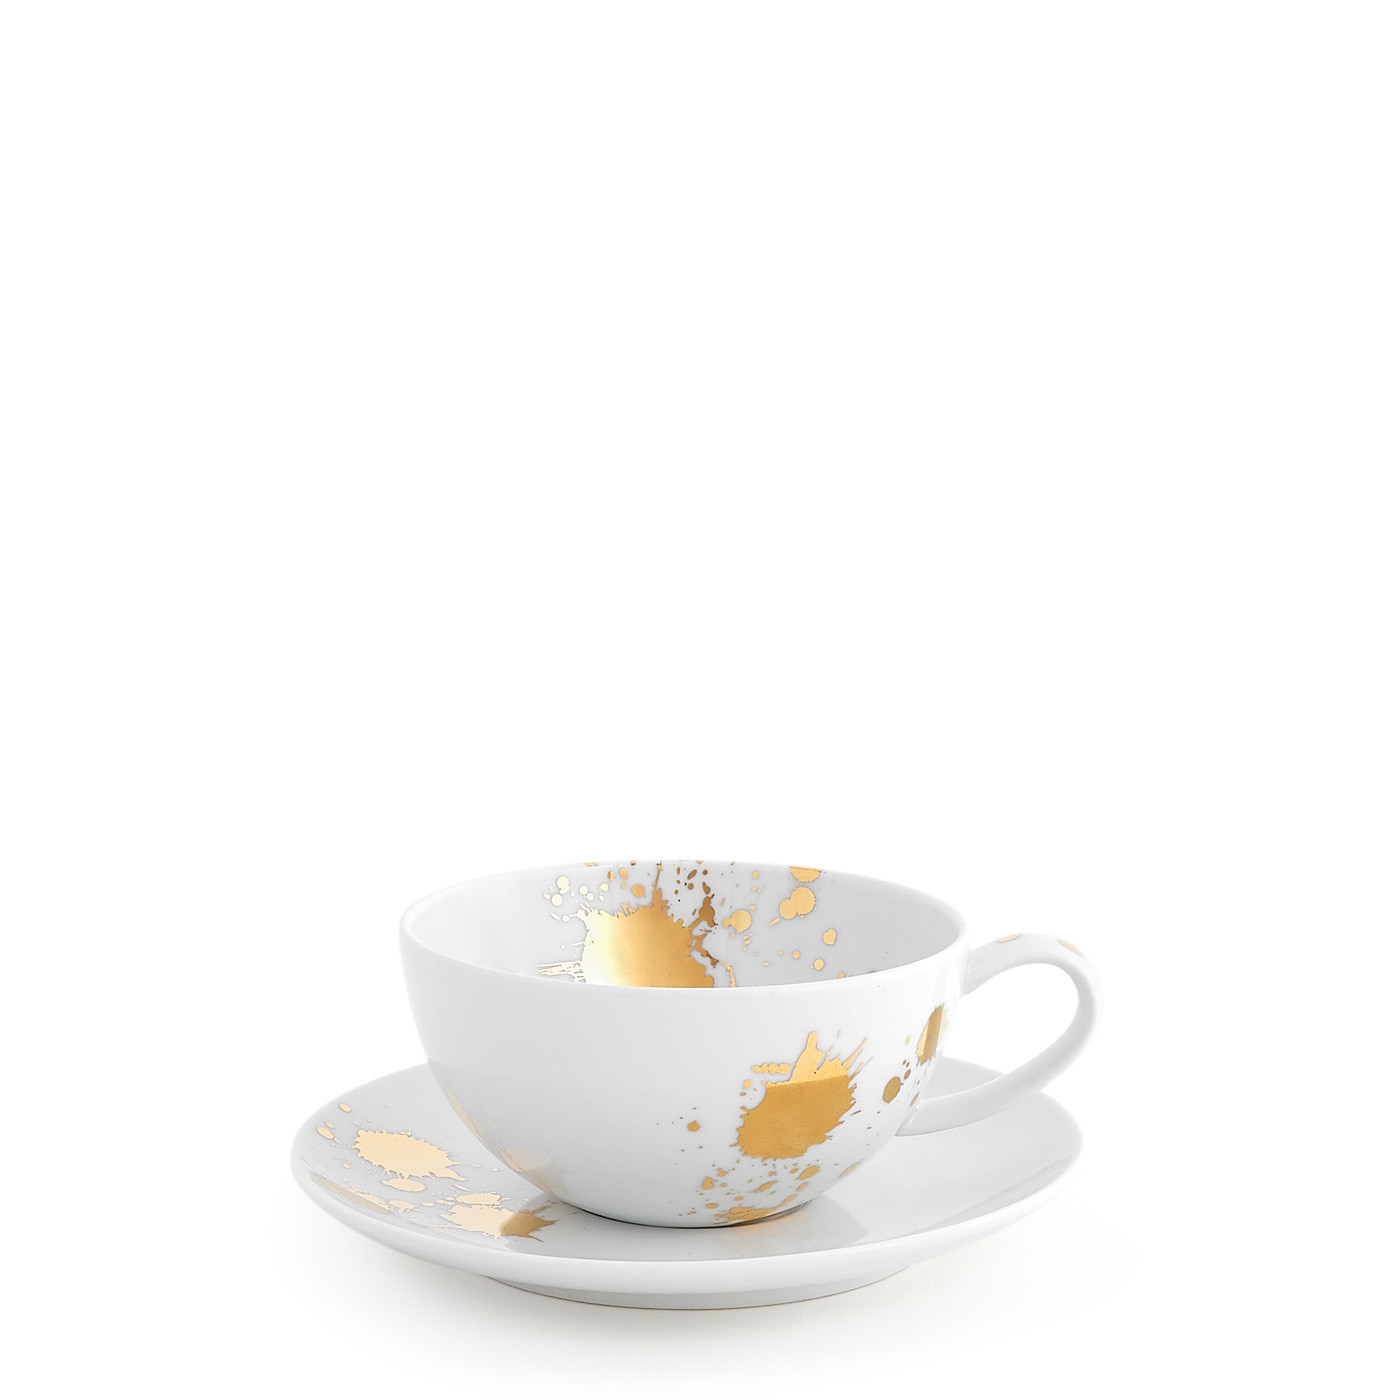 Jonathan Adler 1948 White and Gold Tea Cup and Saucer / Set of 8